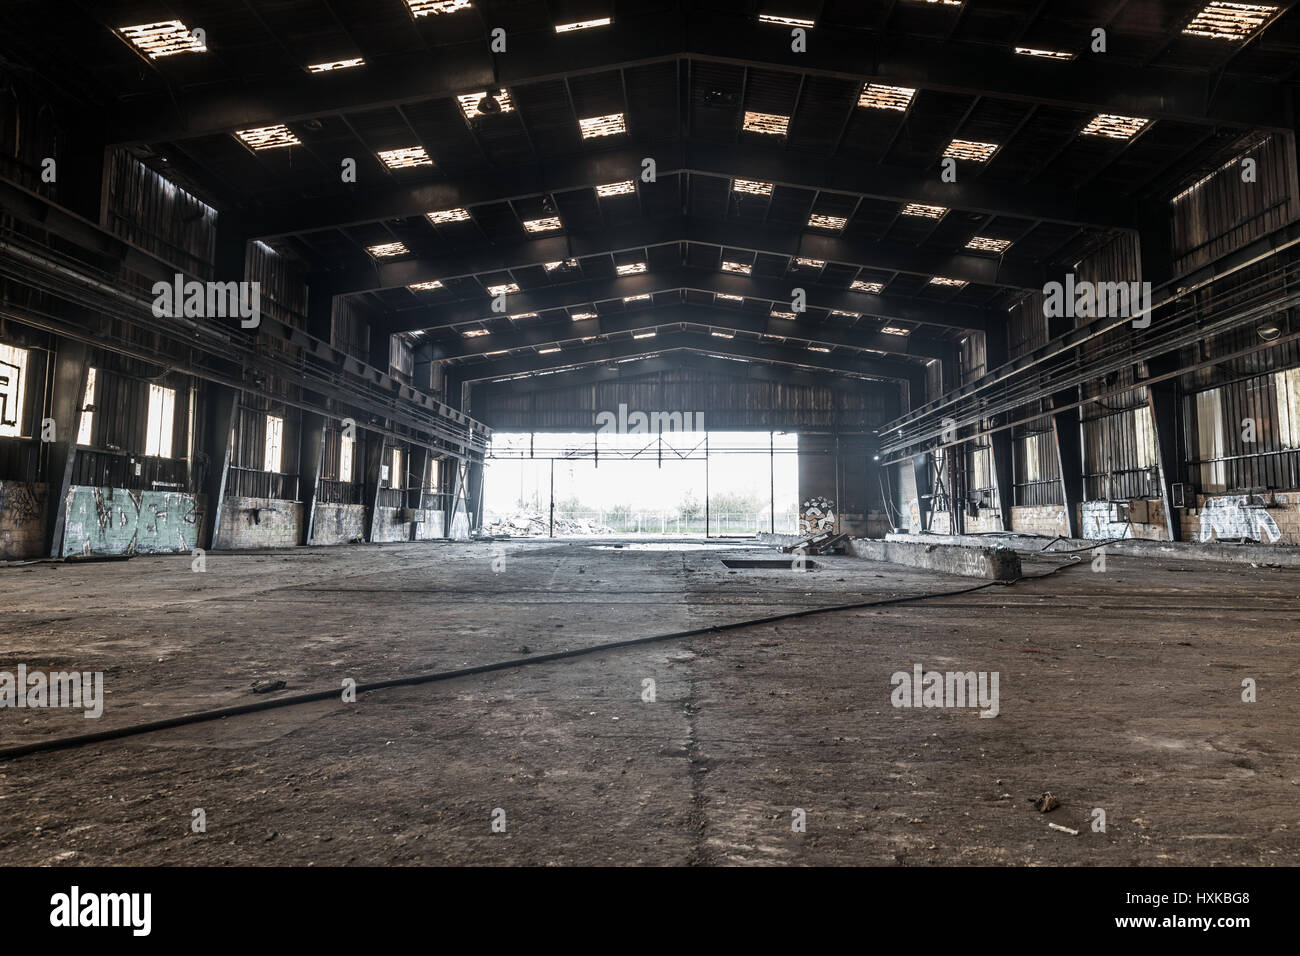 Large abandoned hangar in Nantes  France Stock Photo  136879800   Alamy Large abandoned hangar in Nantes  France